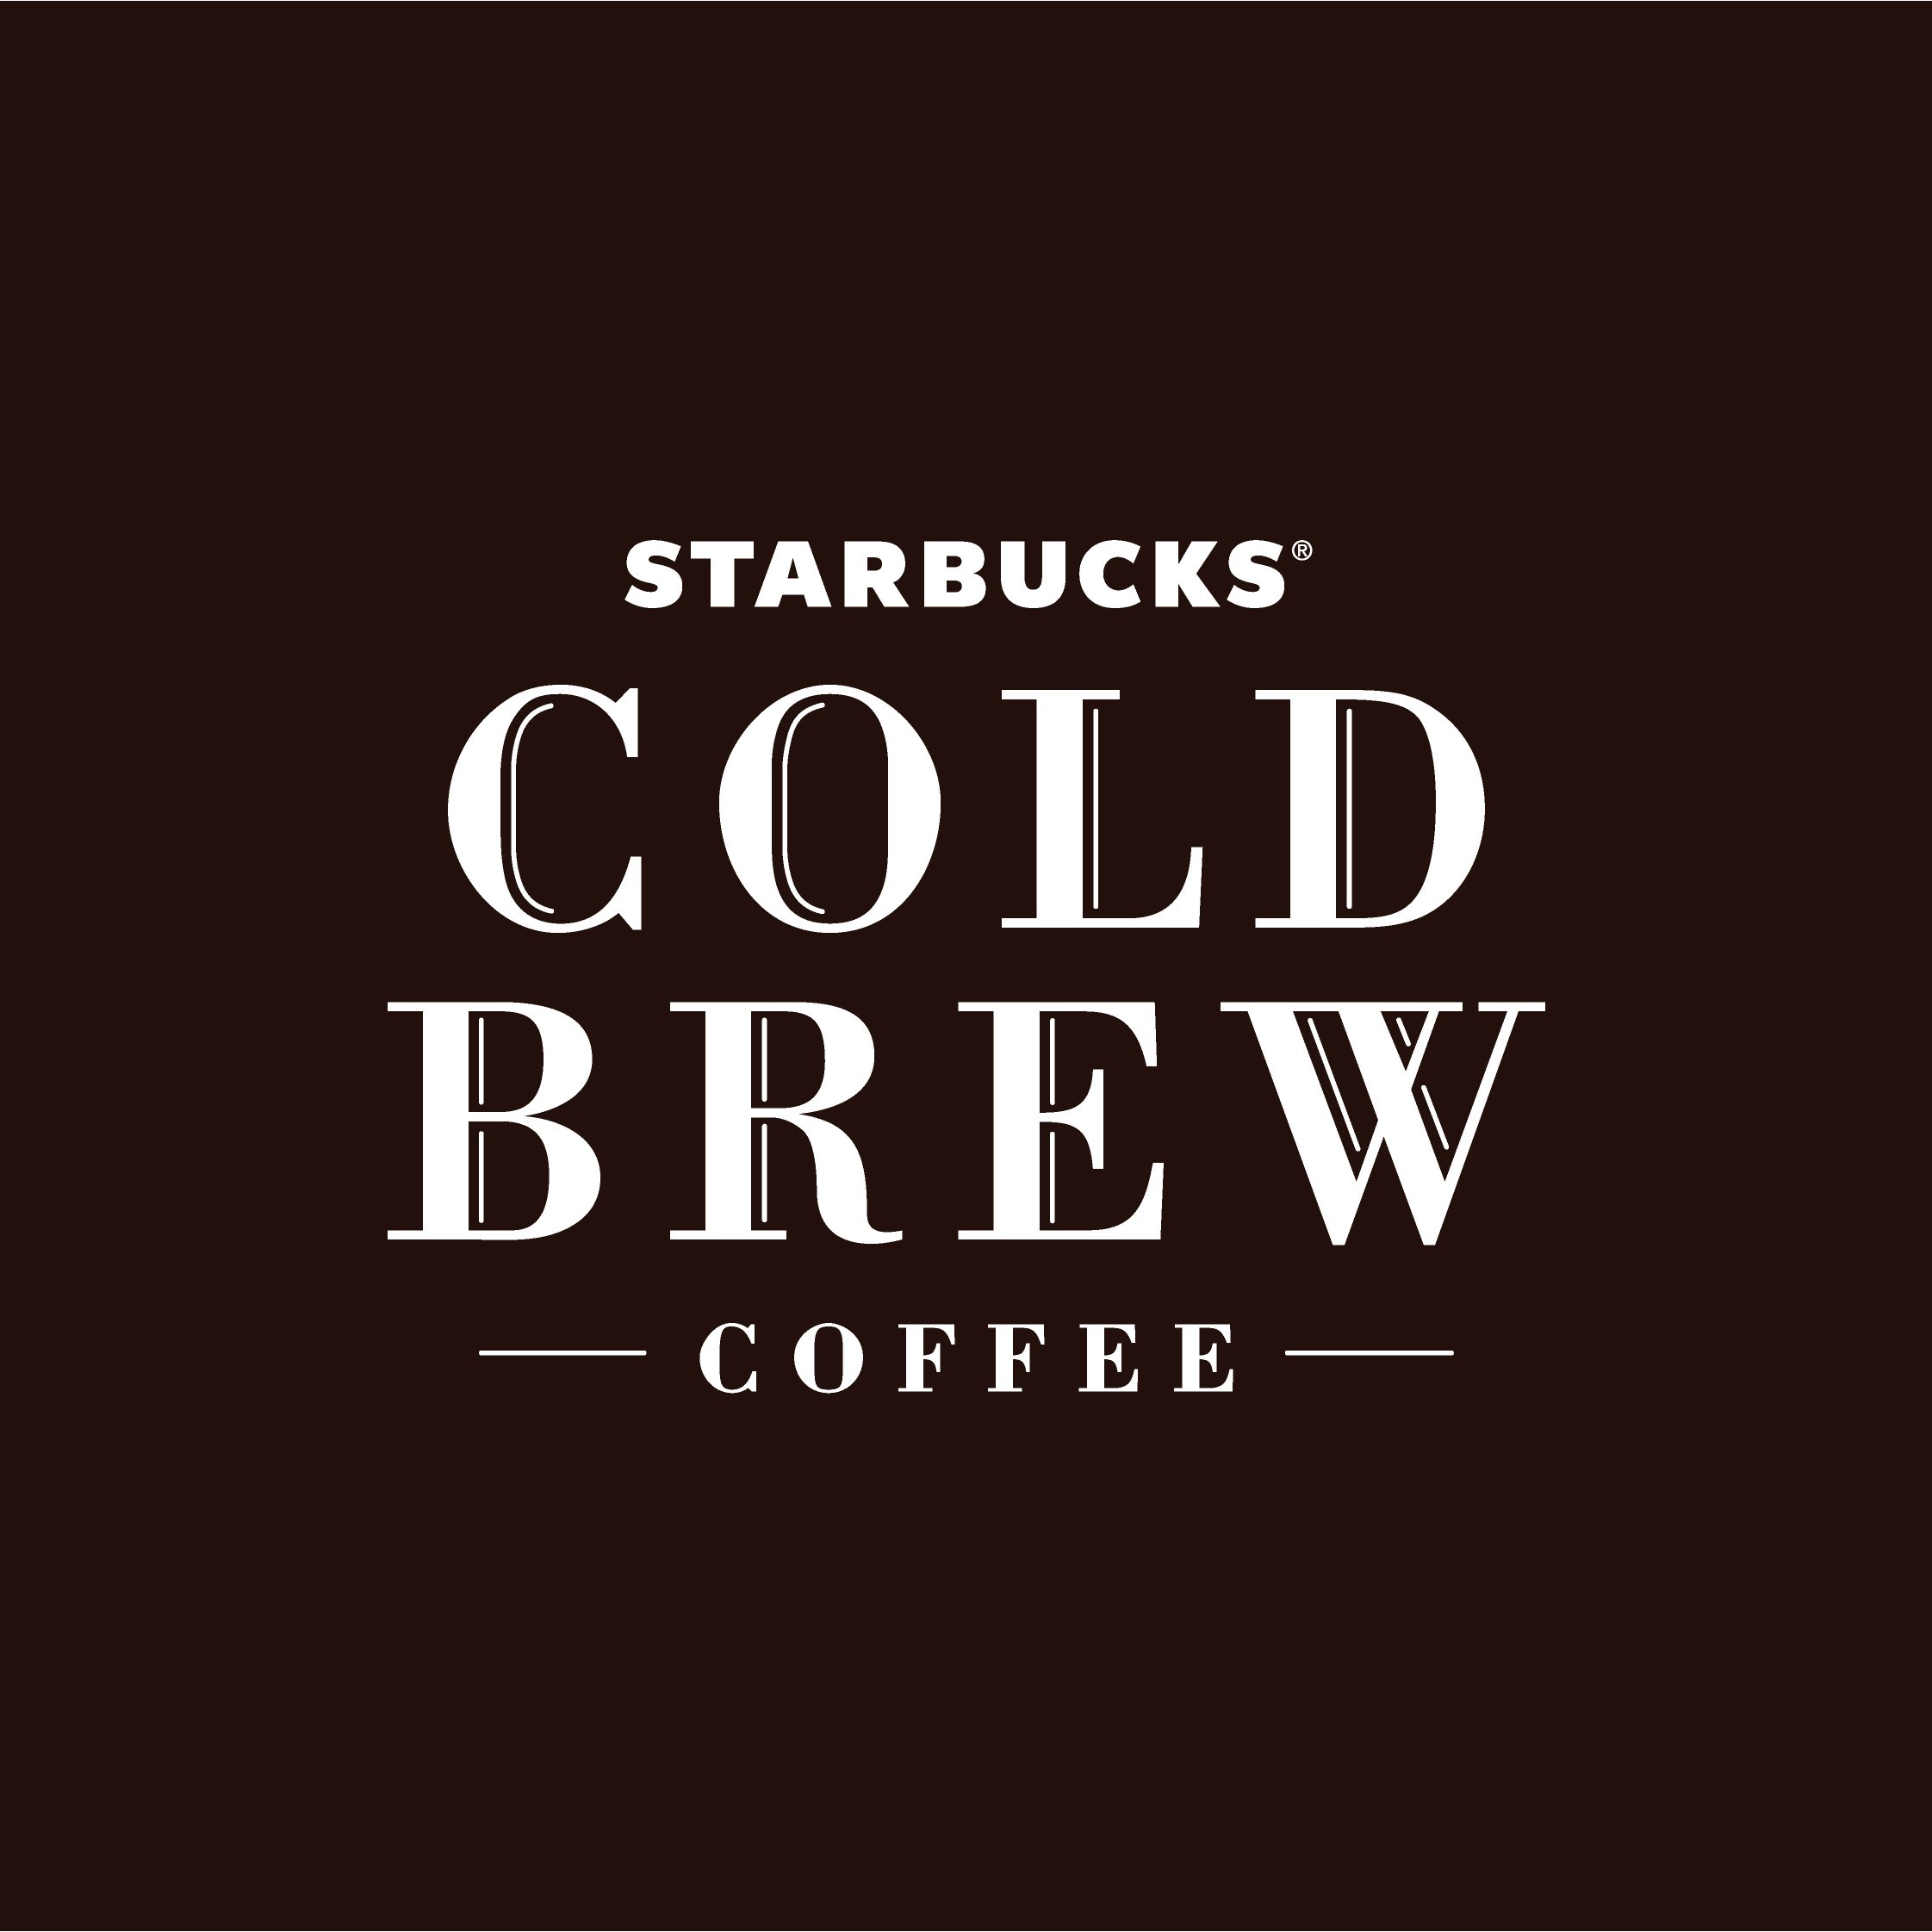 Starbucks Cold Brew Coffee, Black Unsweetened, 11 oz Glass Bottles, 6 Count by Starbucks (Image #7)